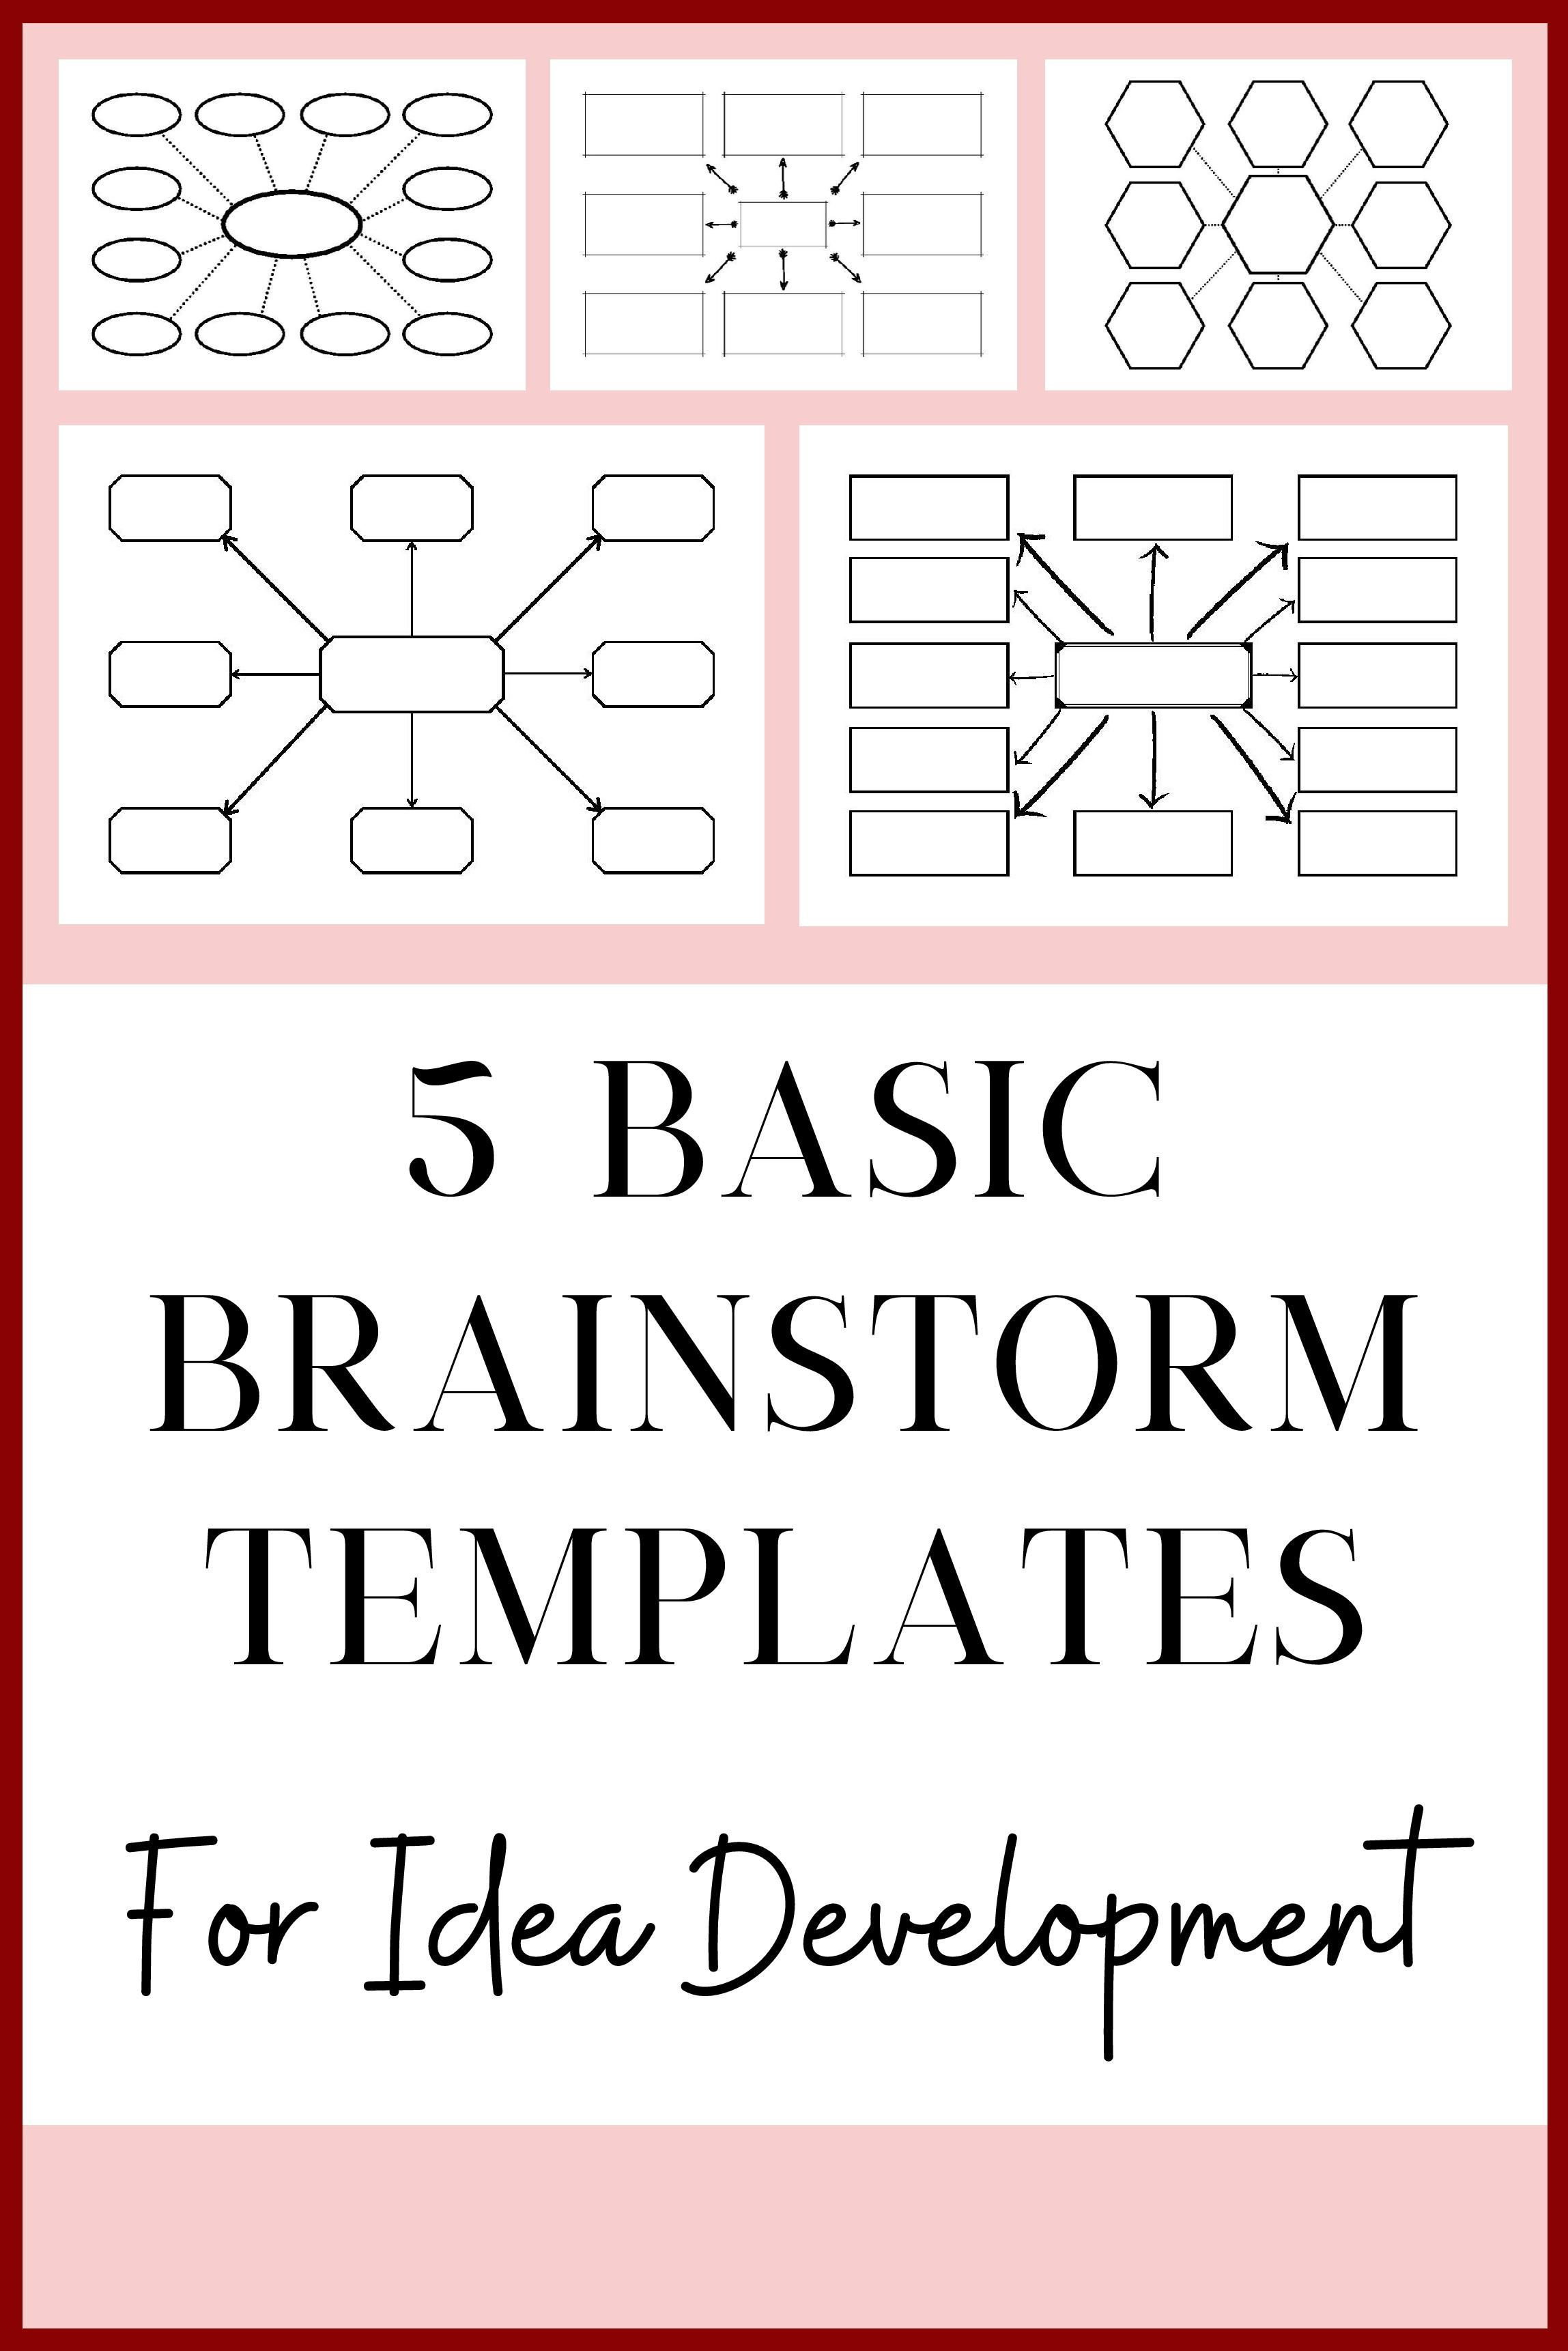 Brainstorm Templates 5 Basic Mindmap Layouts For The